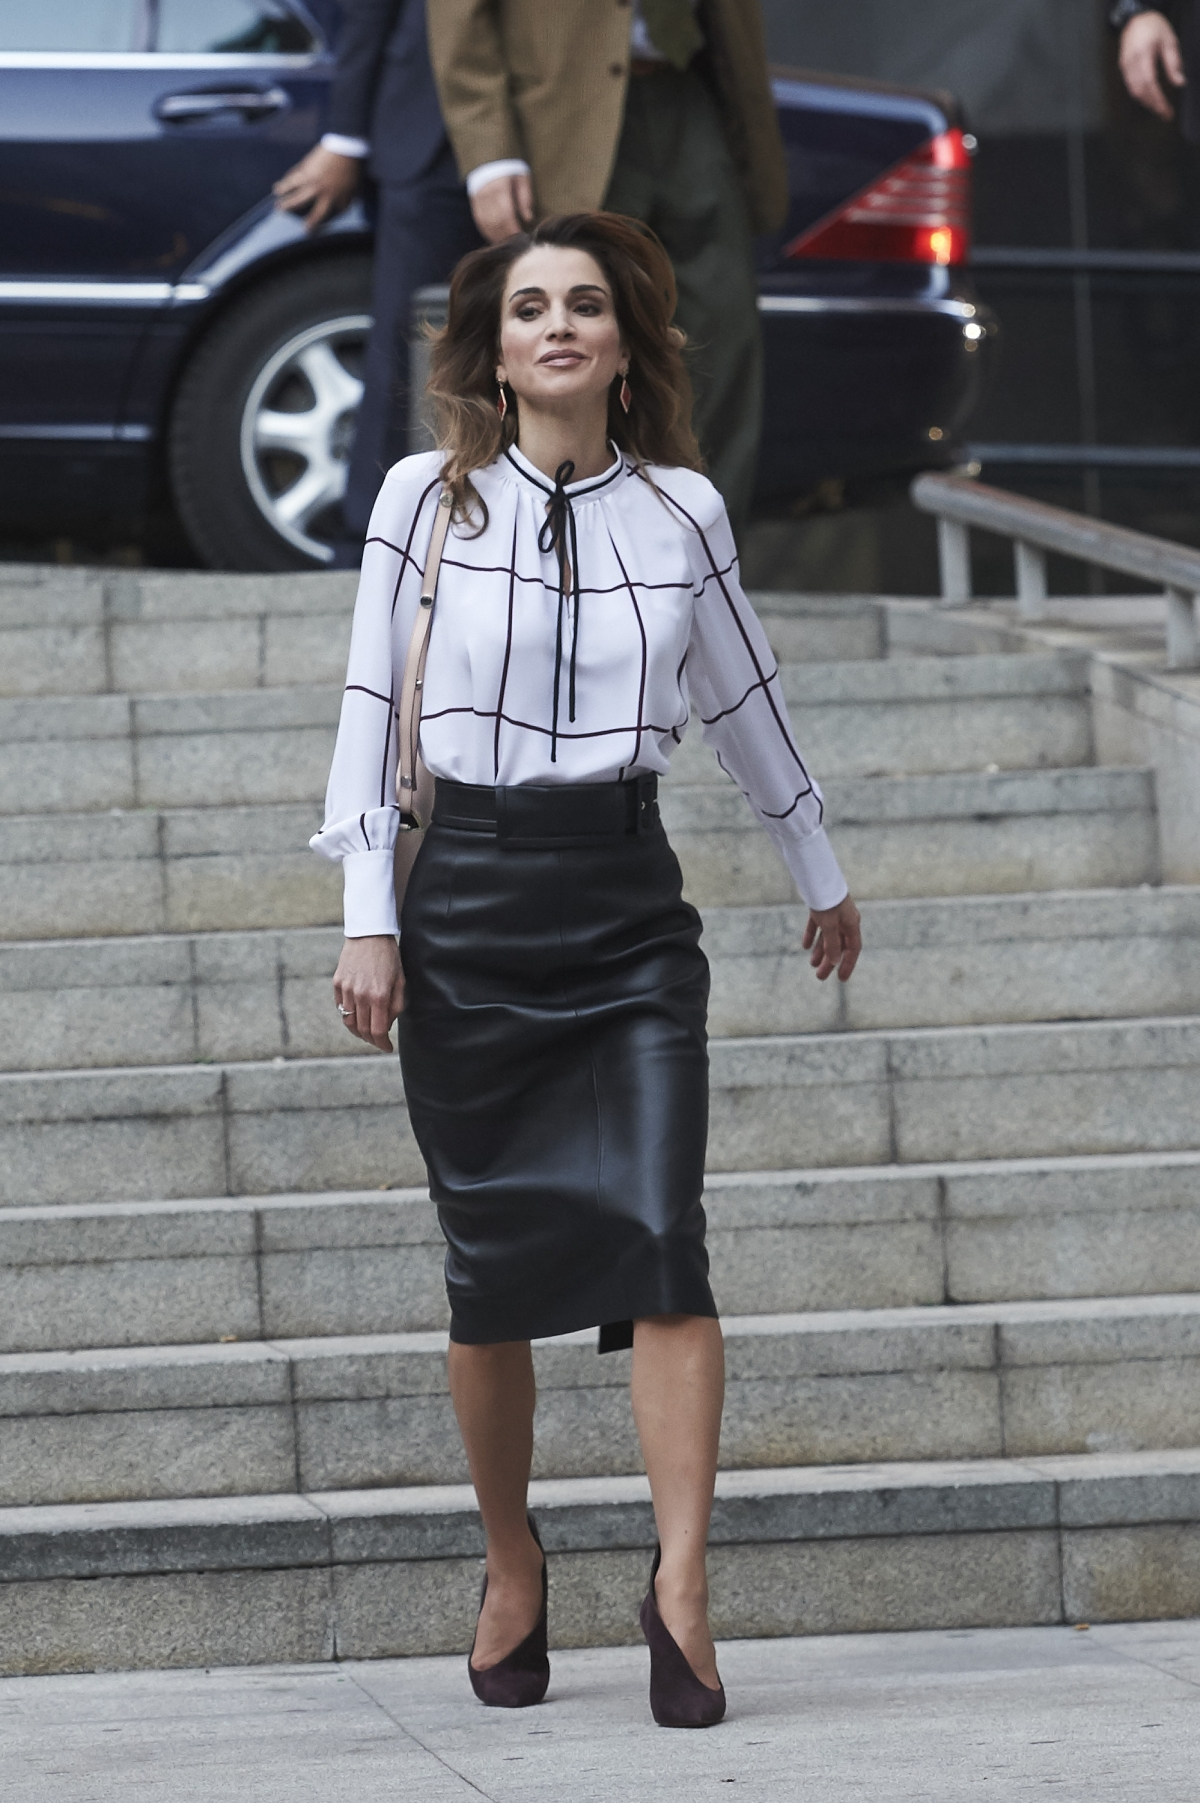 Queen Rania's style in 2015